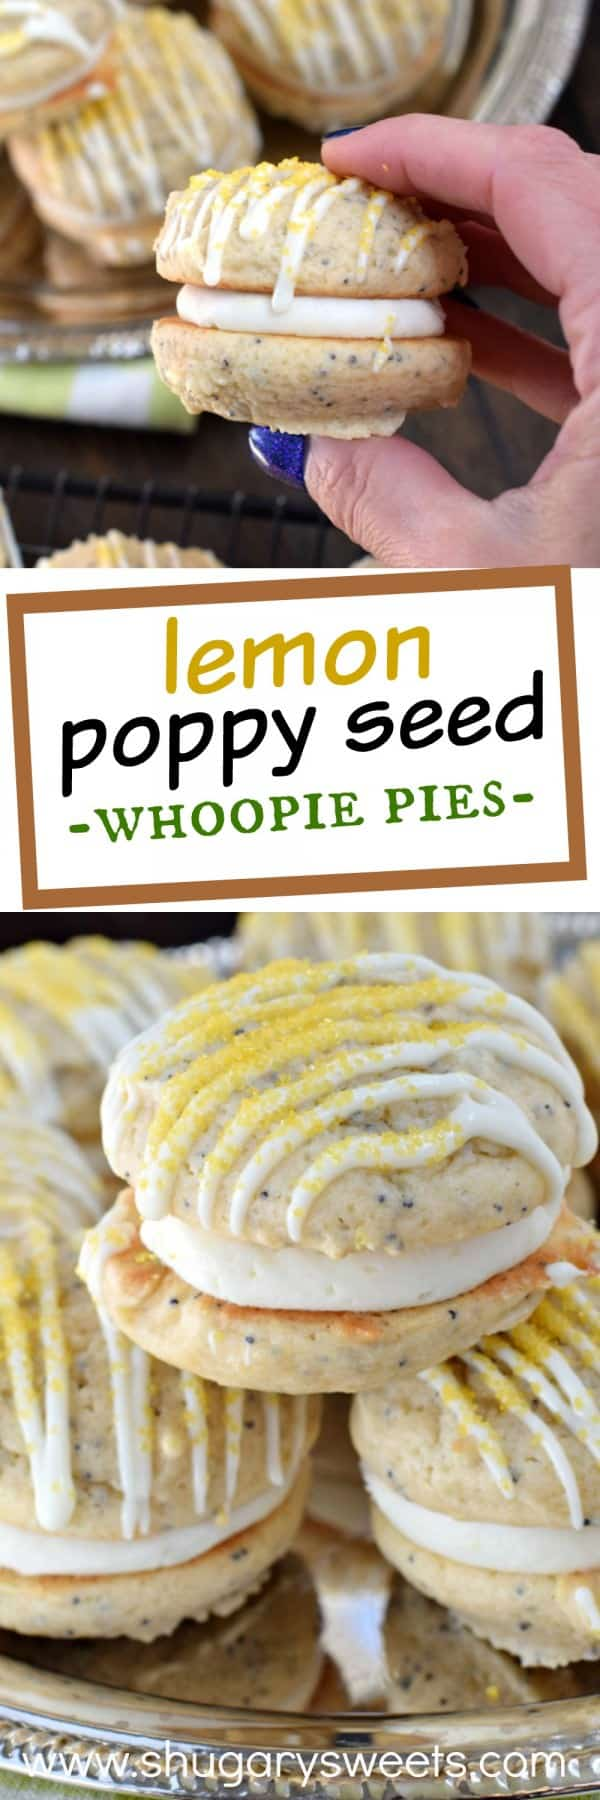 These Lemon Poppy Seed Whoopie Pies are a soft and chewy cookie with a sweet and tangy citrus filling! Your tastebuds are going to sing!